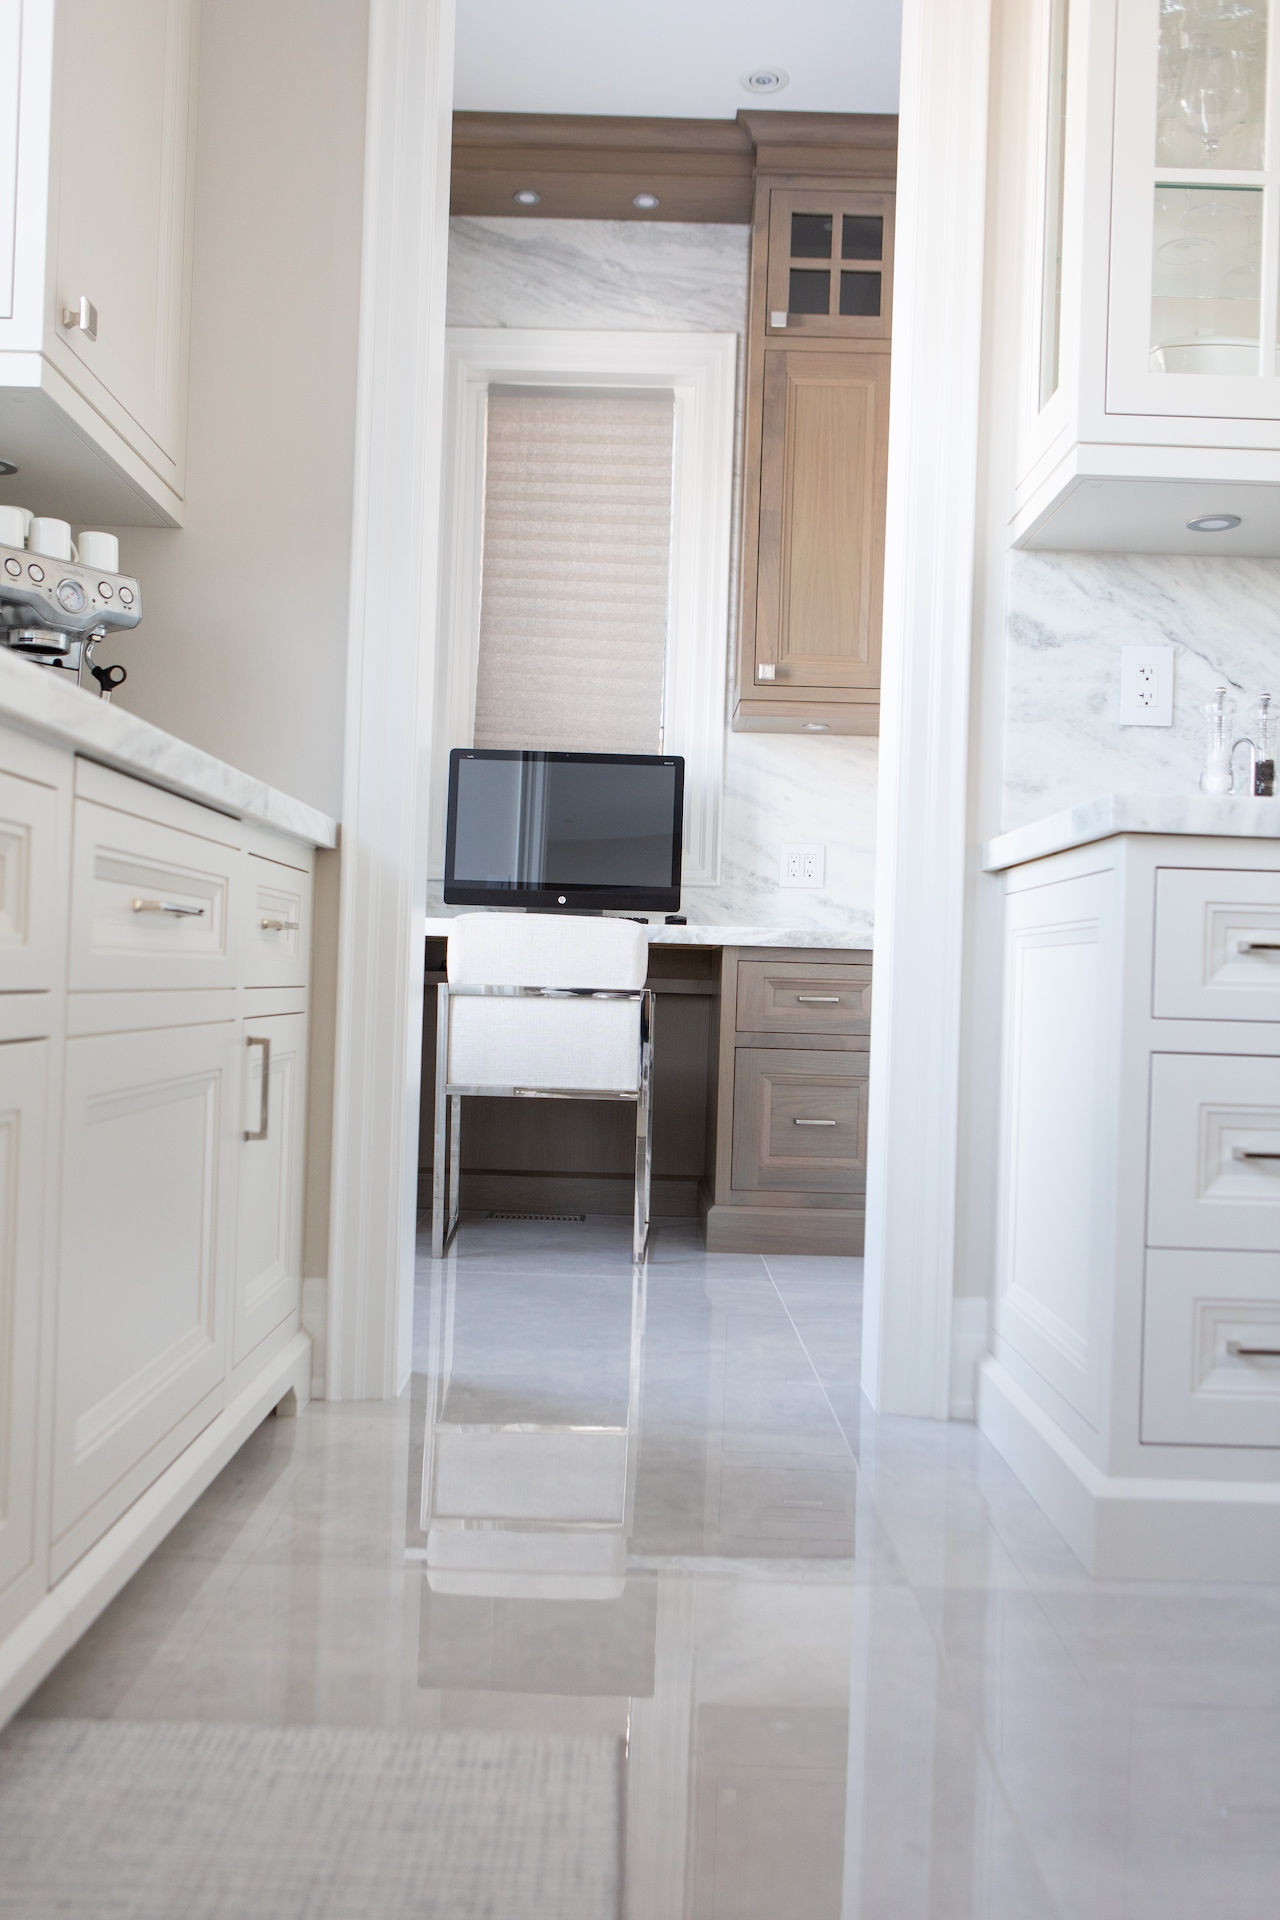 Kitchen floor withe cabinets